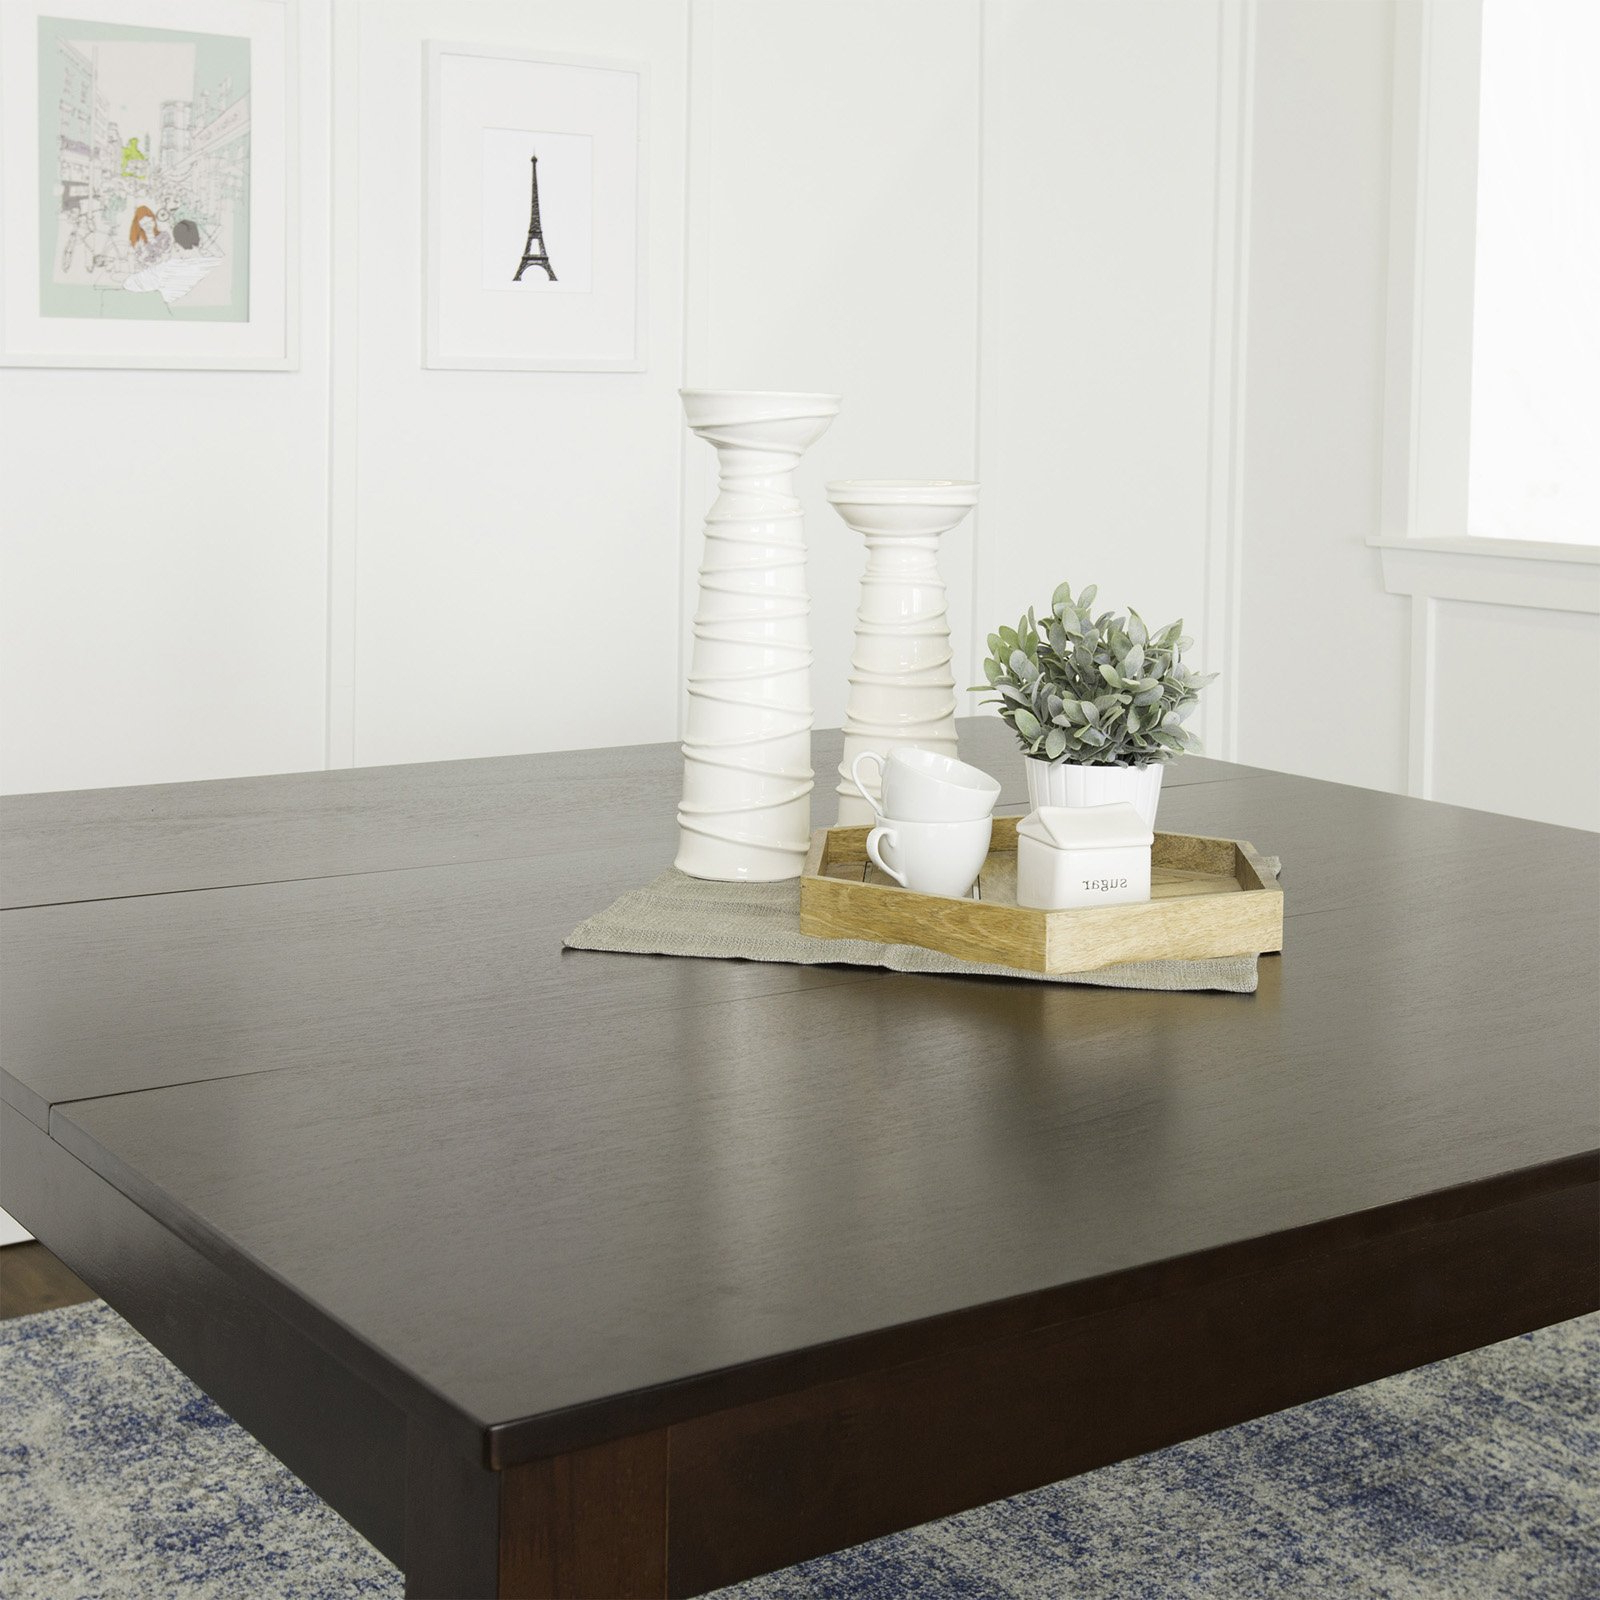 Newest Walker Edison Solid Wood Casual Dining Table – Cappuccino In Cappuccino Finish Wood Classic Casual Dining Tables (Gallery 27 of 30)